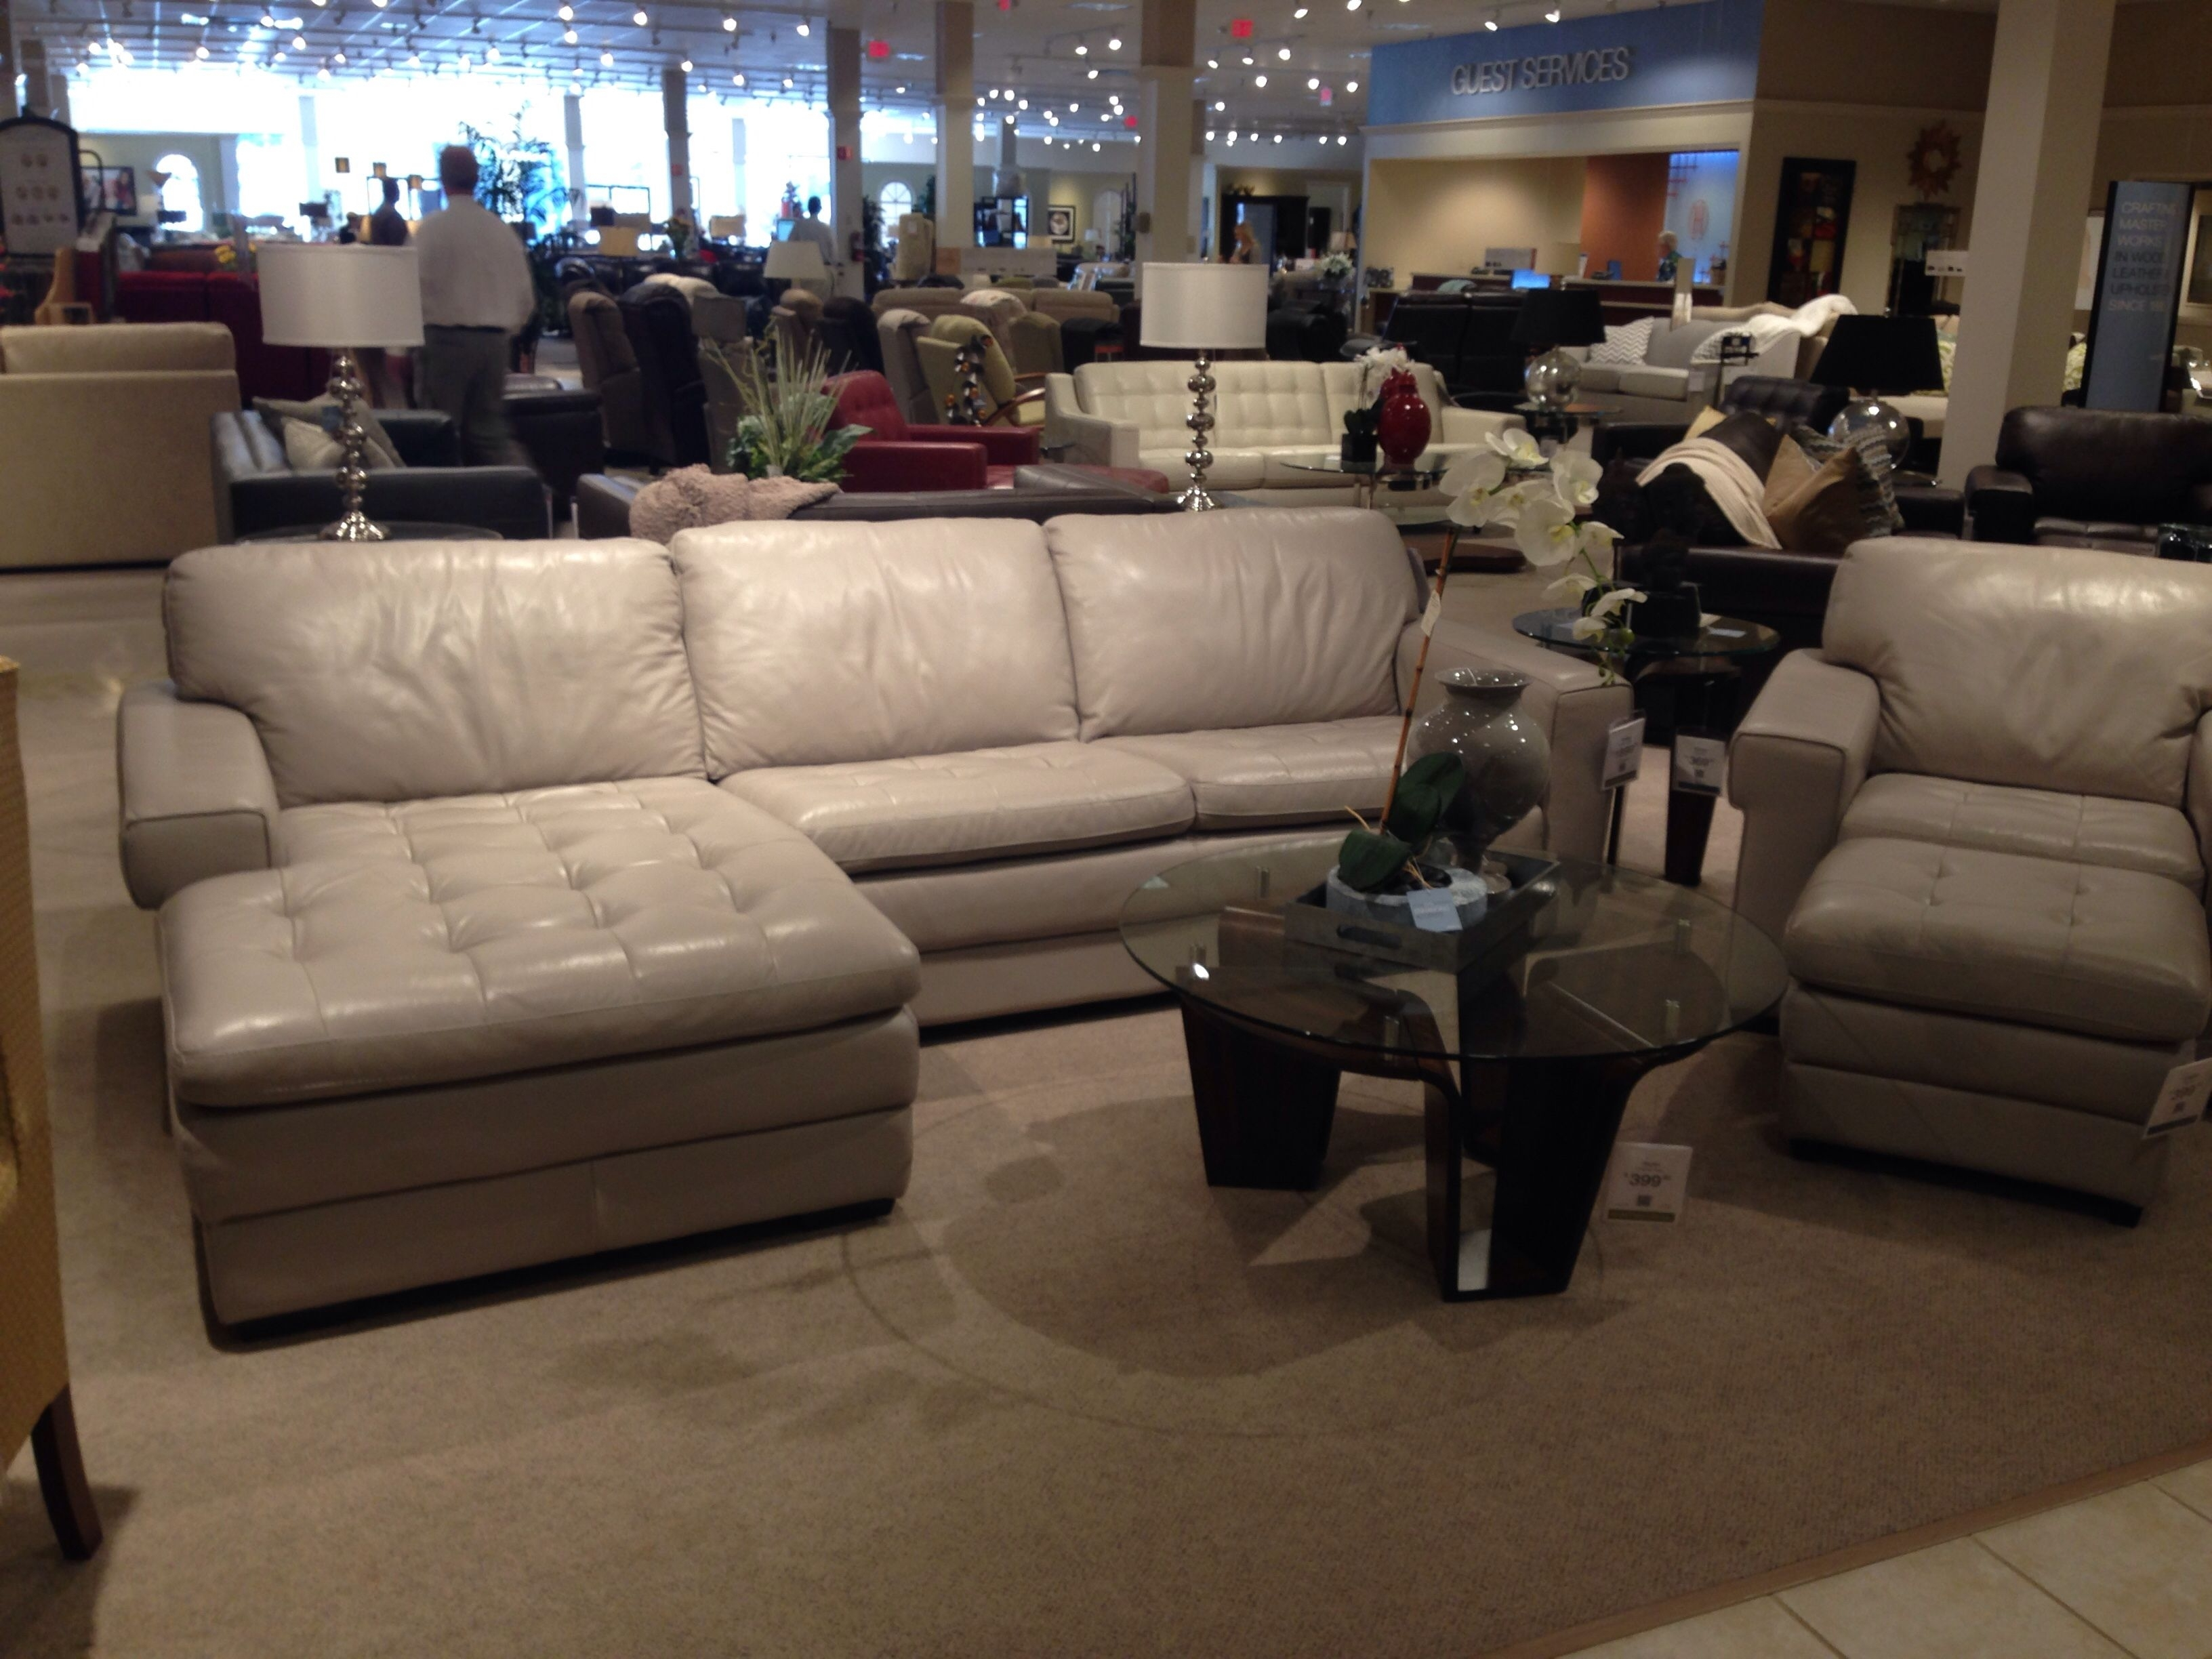 Galaxy Sectional Havertys | For The Home | Pinterest | Room Decor within Sectional Sofas At Havertys (Image 8 of 15)